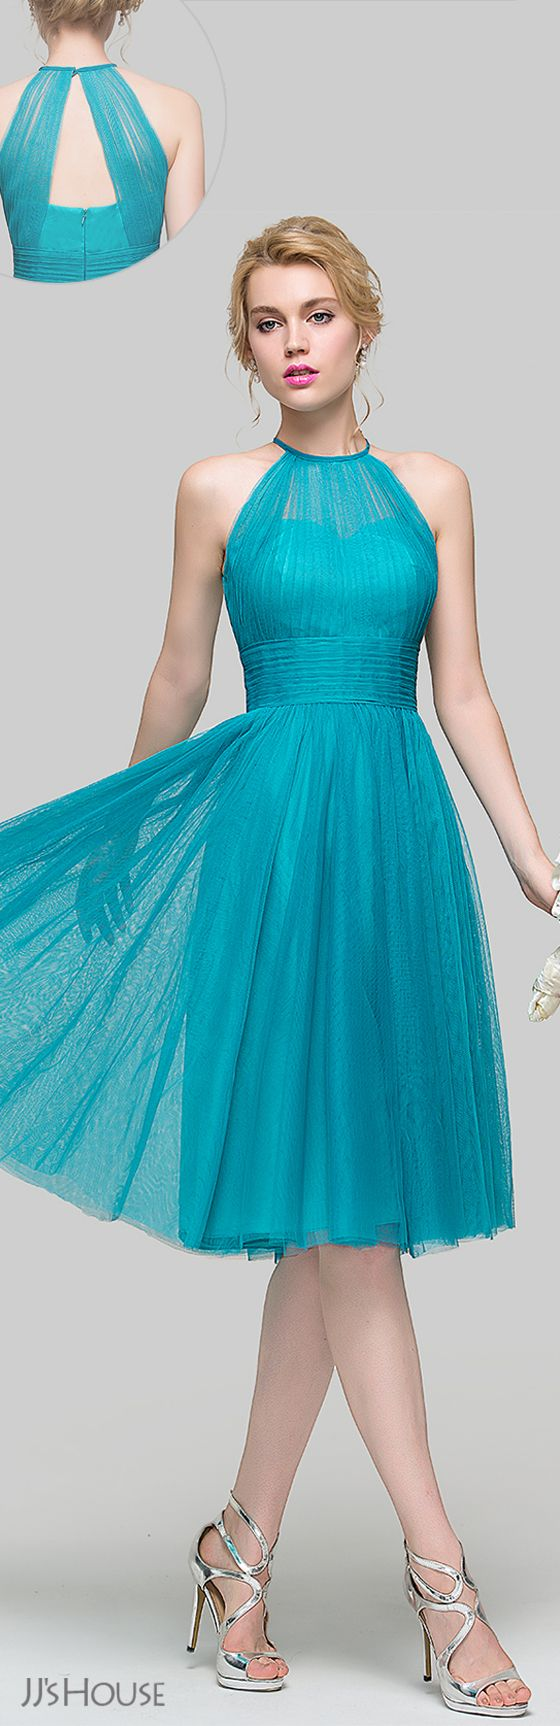 Jjshouse bridesmaid fashion pinterest clothes prom and gowns